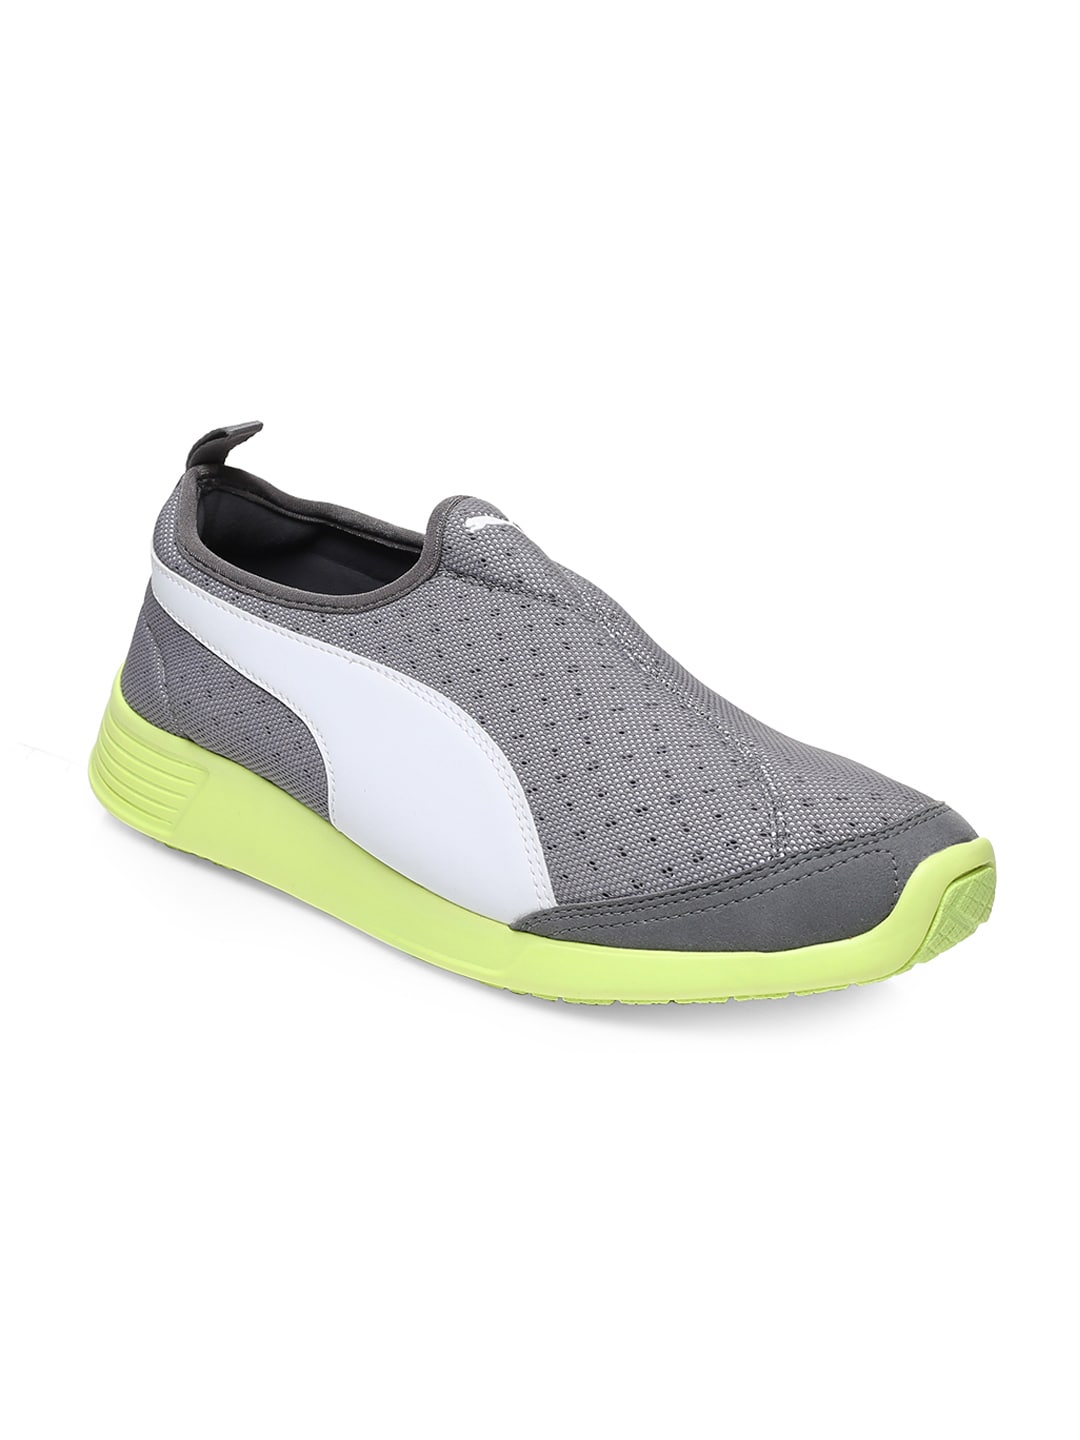 091bf8c6d5d2 Puma Evo Shoes - Buy Puma Evo Shoes online in India